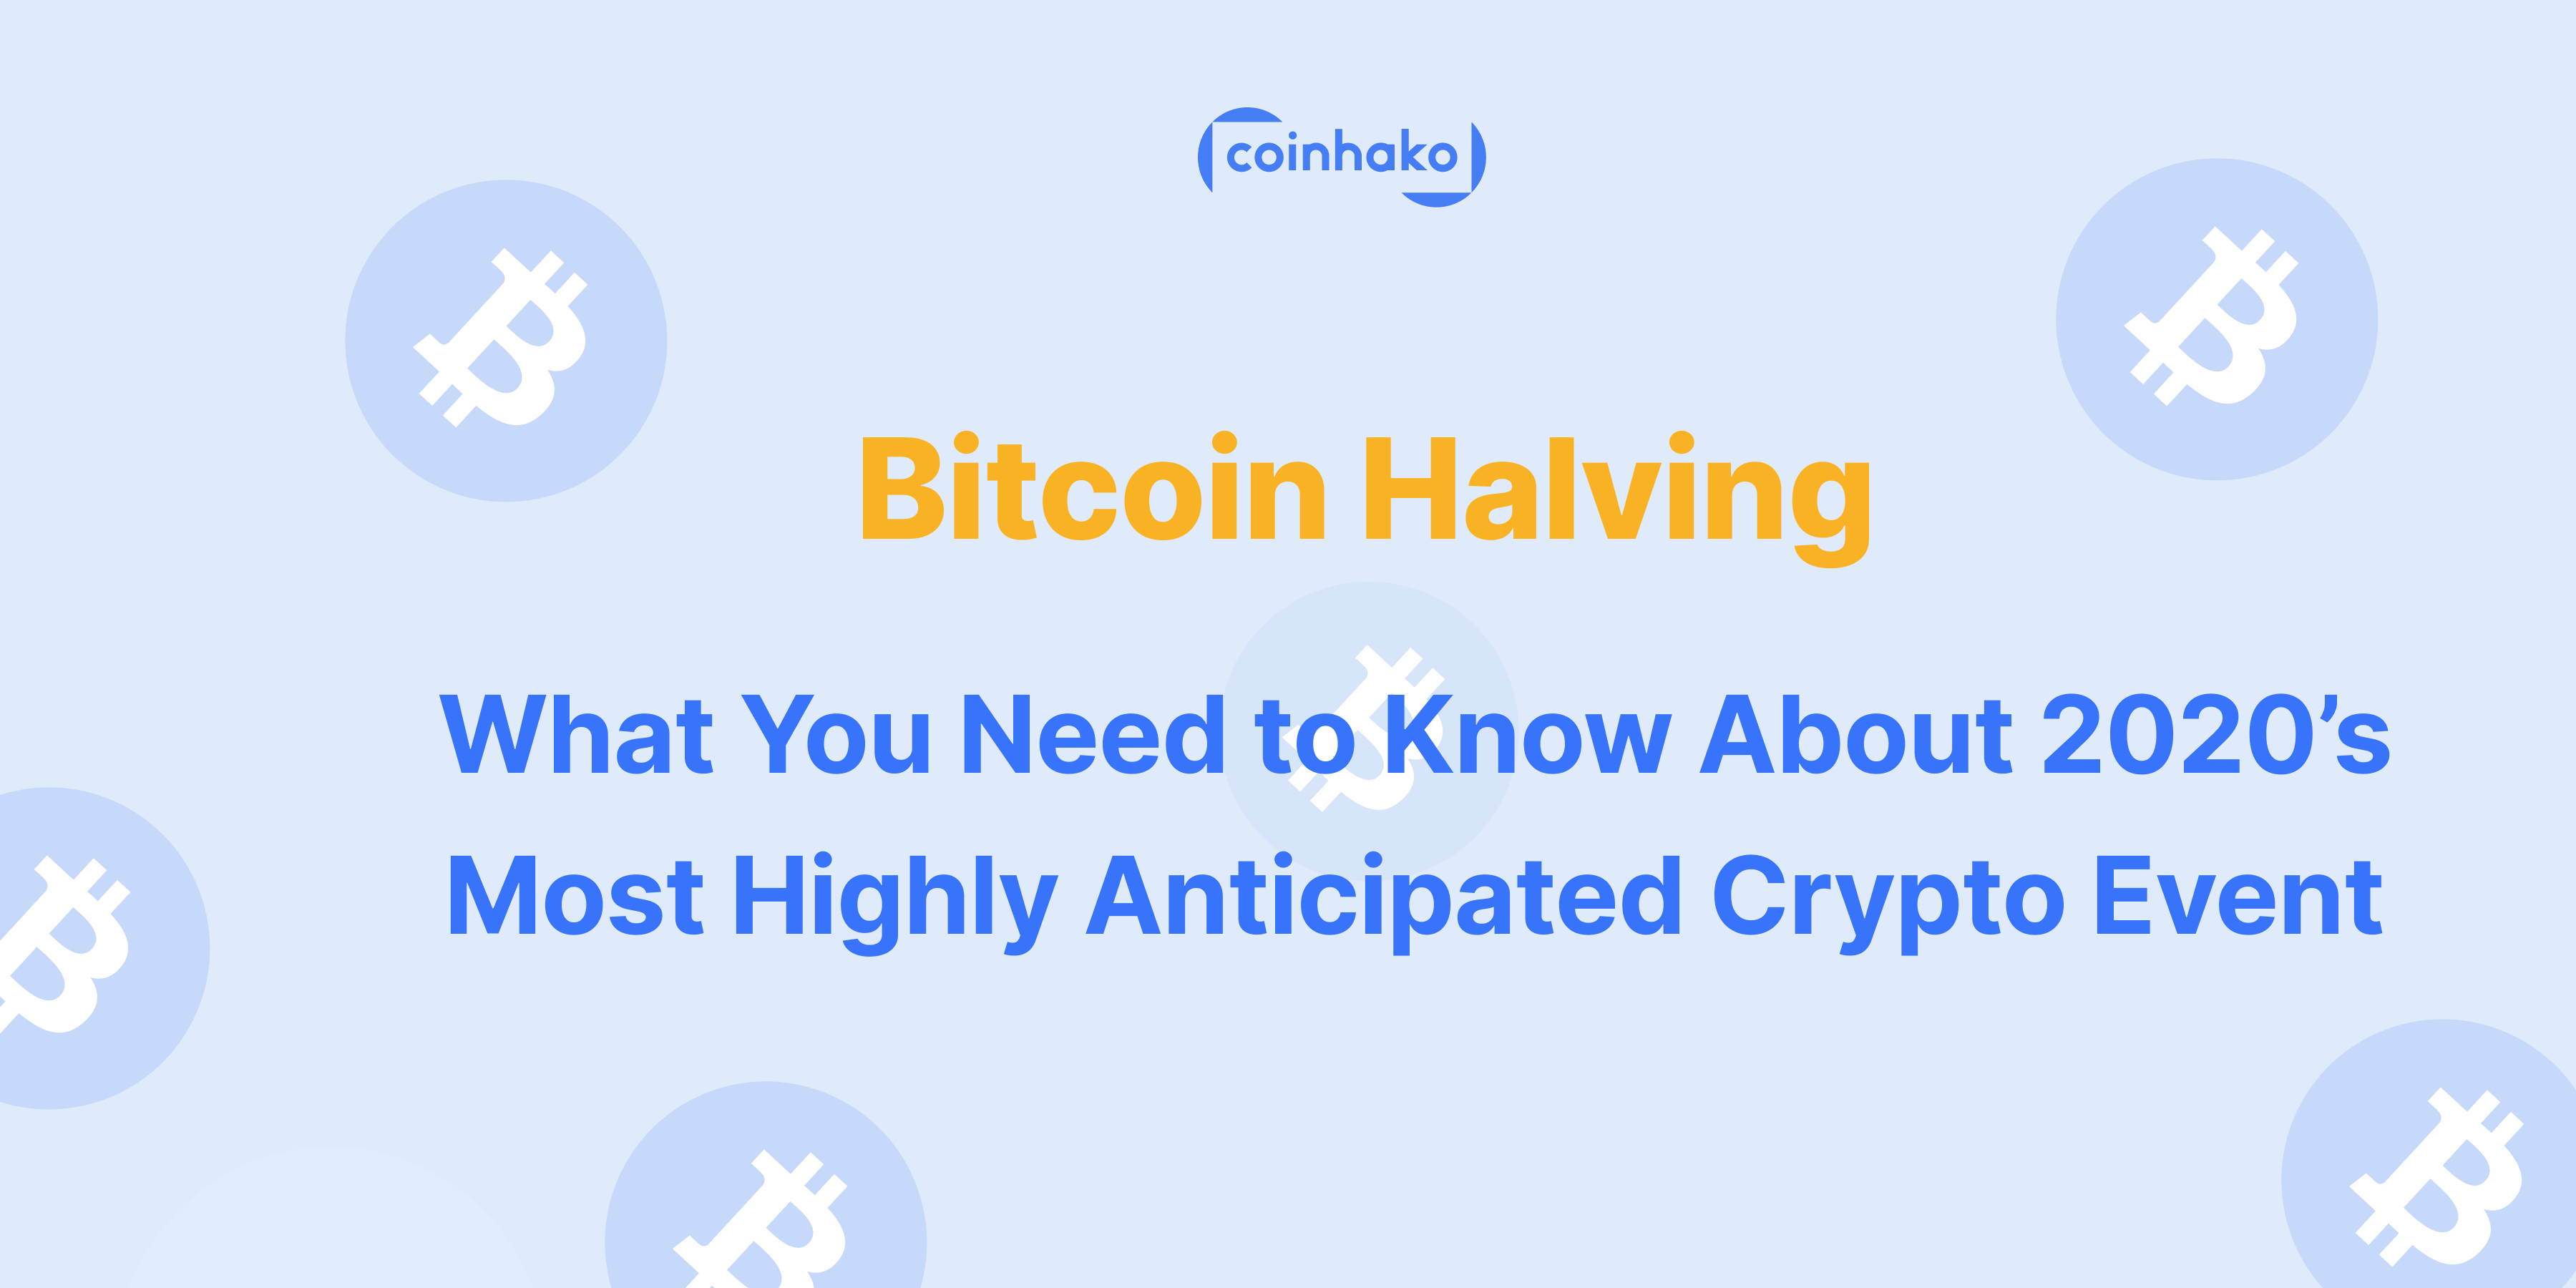 Bitcoin Halving: What To Expect from Crypto's Most Anticipated Event of 2020